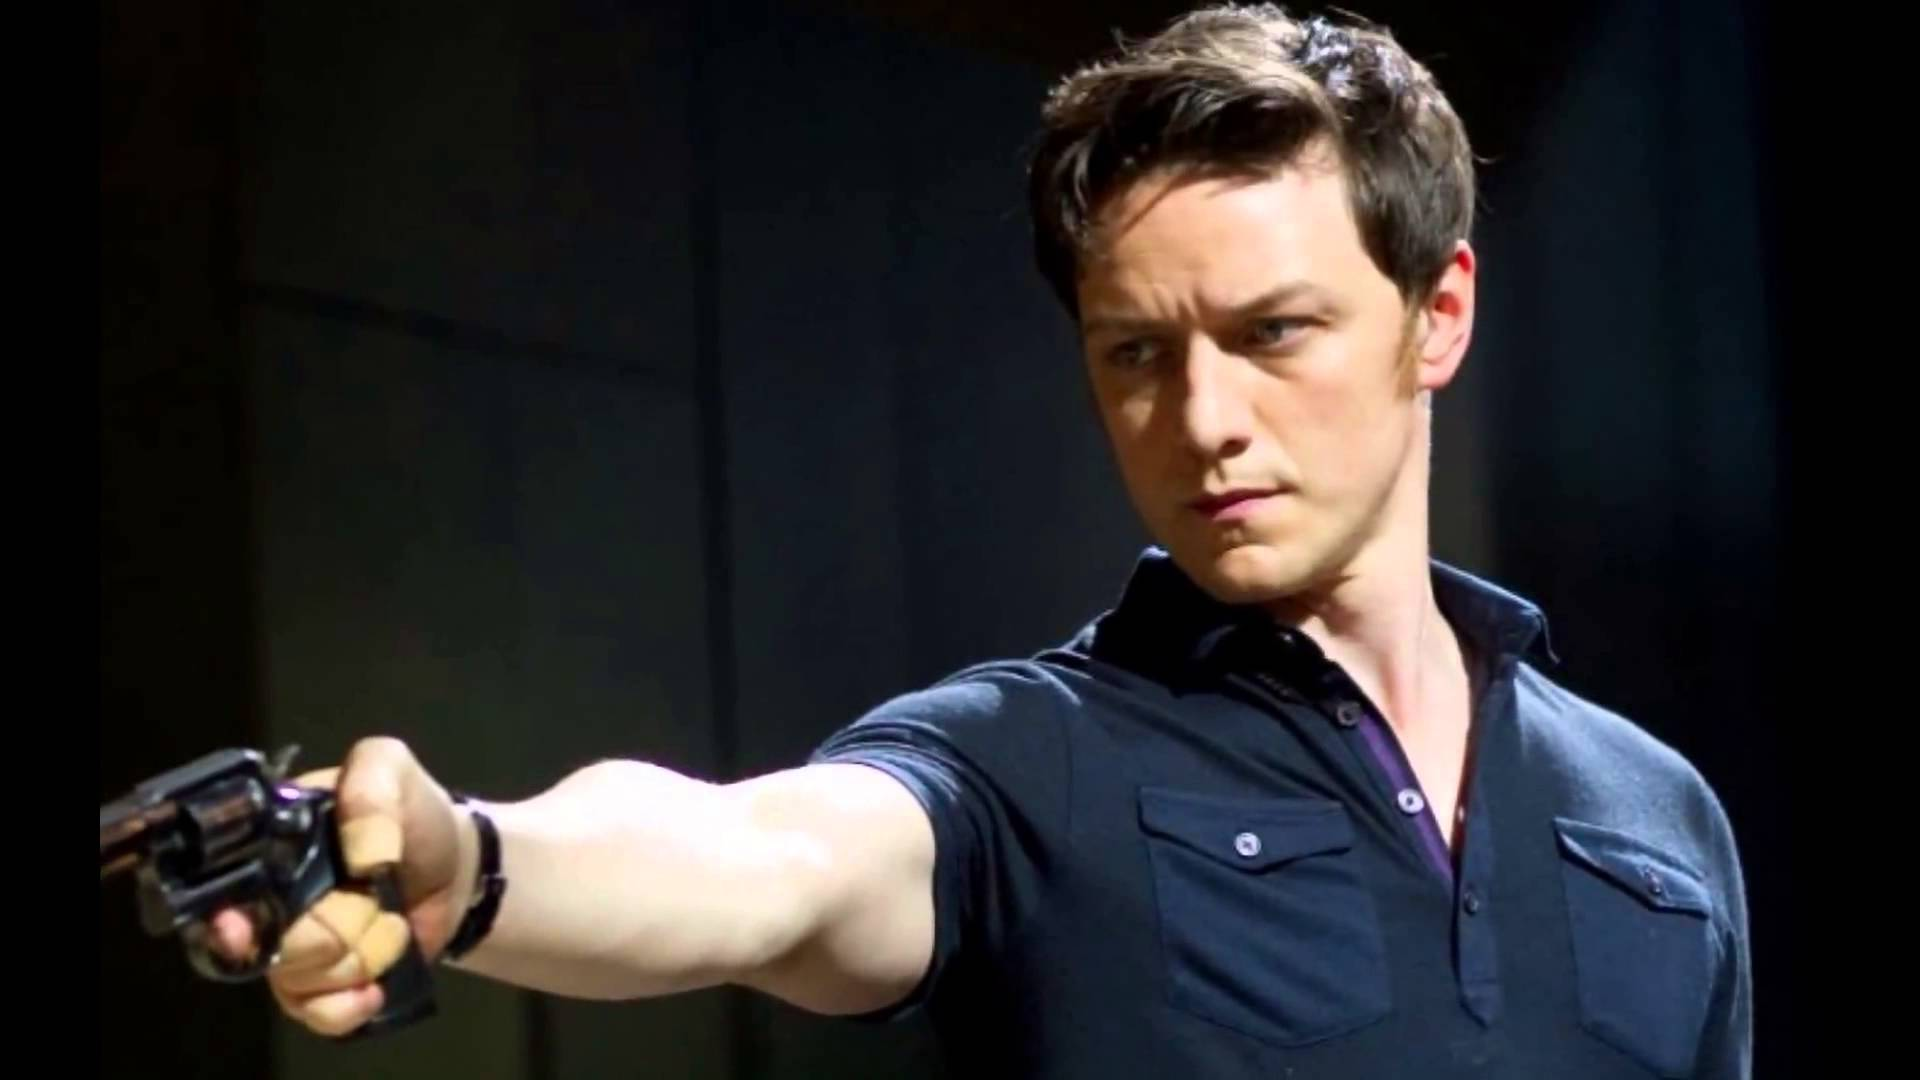 1920x1080 - James McAvoy Wallpapers 19